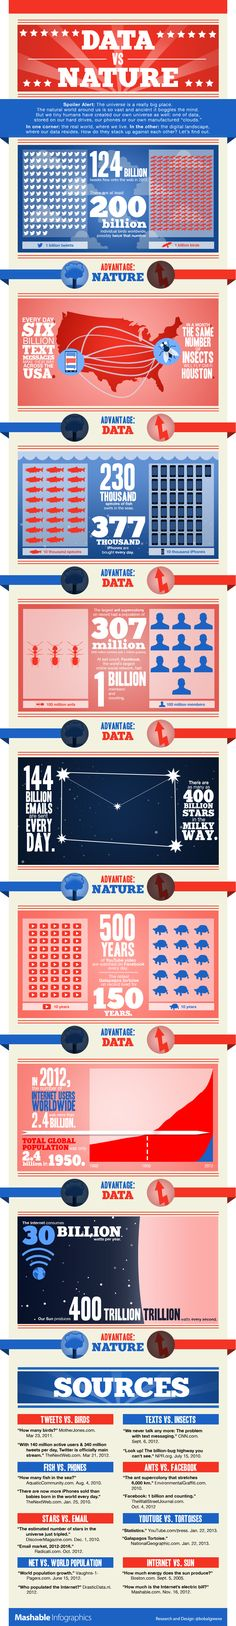 Are there more ants in a colony than members of Facebook? Compare stats from the physical and digital world with this infographic.